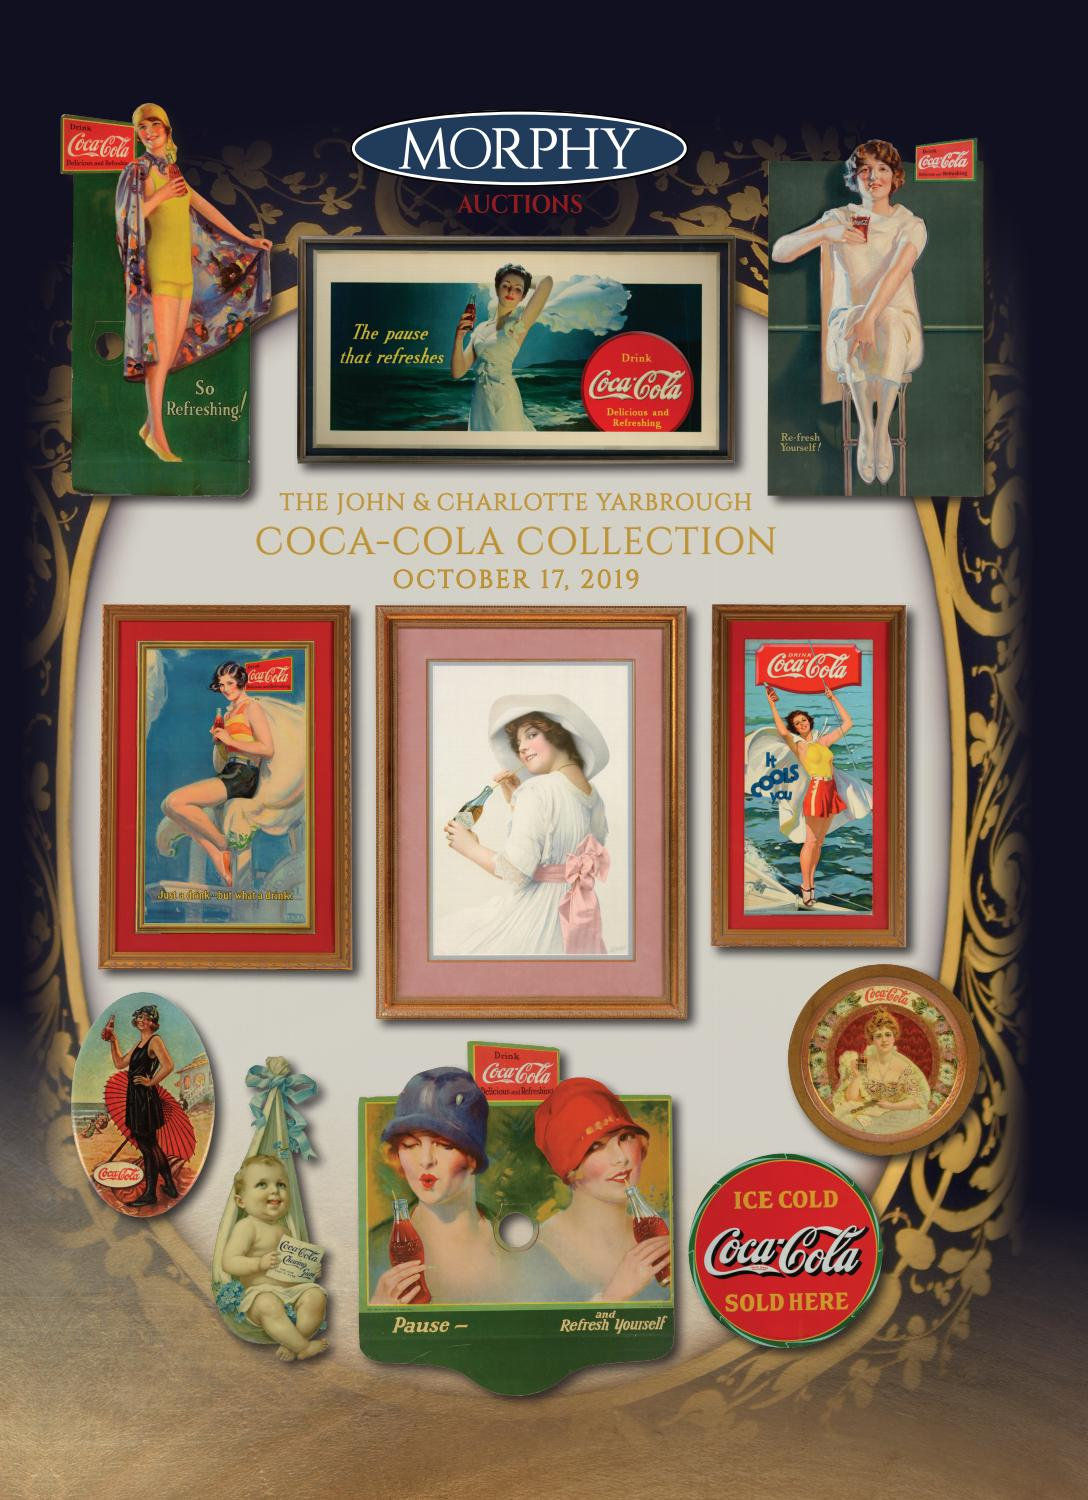 4 Coca-Cola Stickers w// Etched Glass Effect Translucent Coke Decals 2 Set